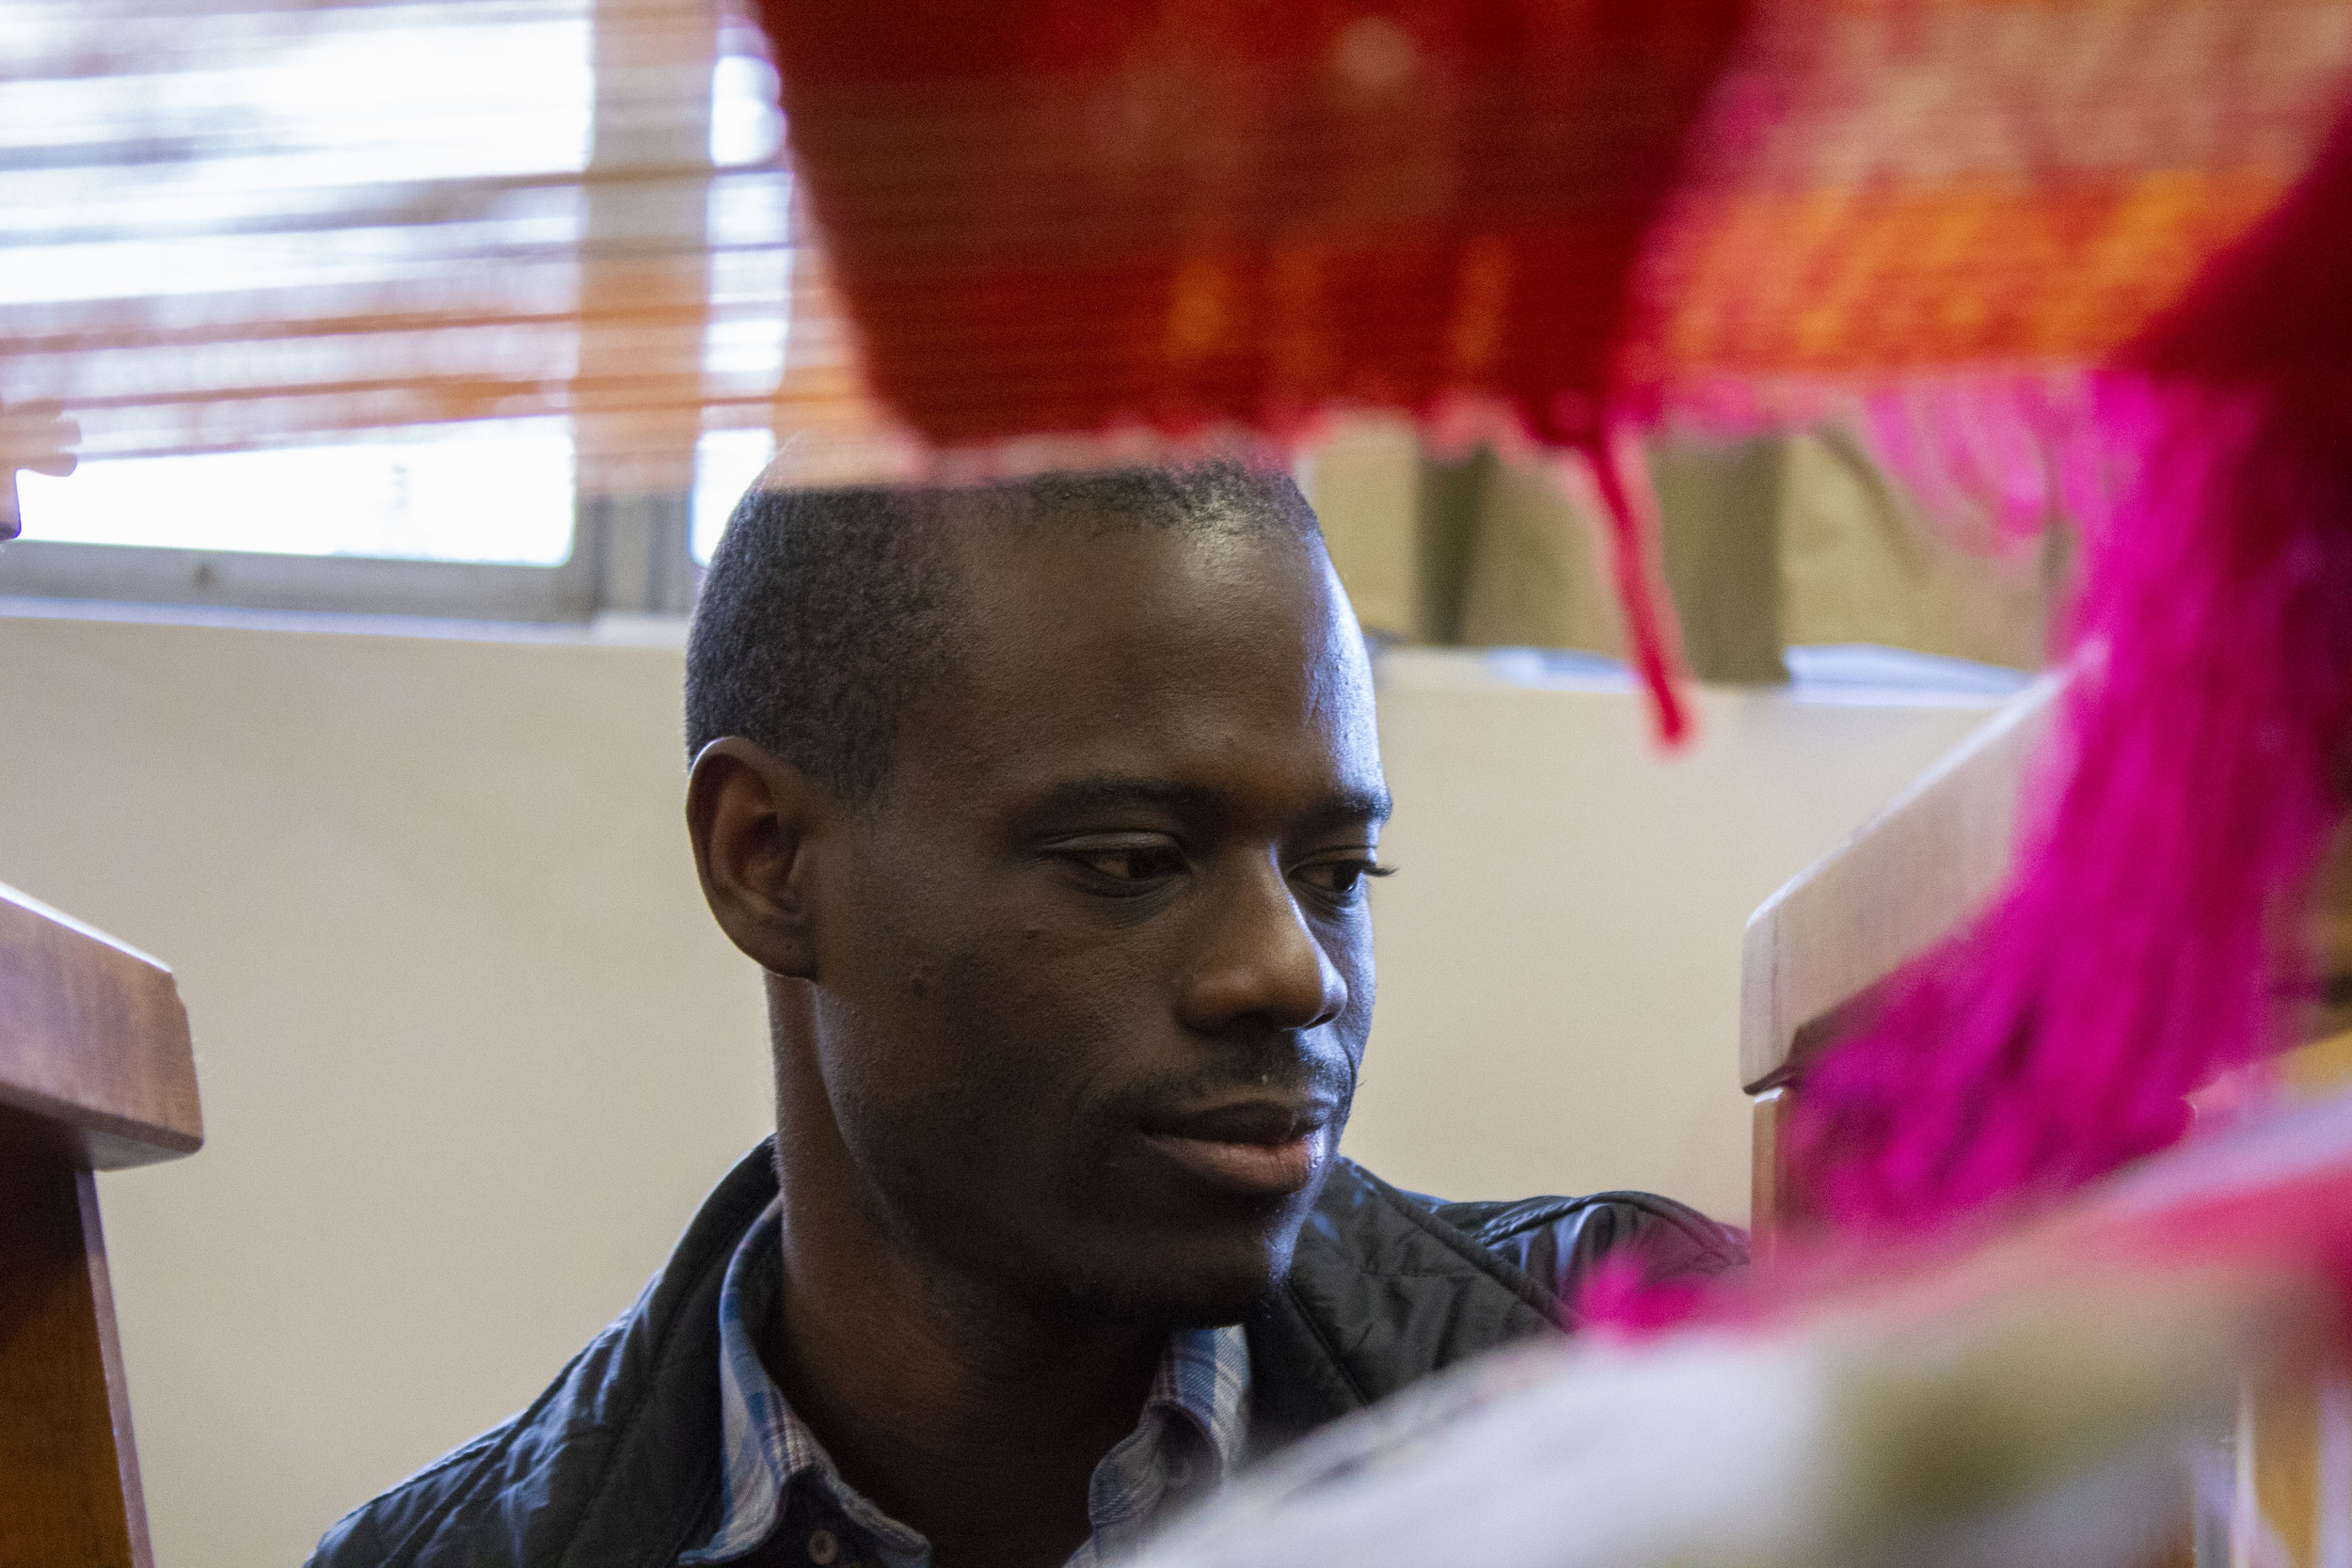 Diedrick Brackens teaches courses on fiber weaving at Cal State Long Beach and heads the CSULB Fiber program, which has been at the university for over 40 years.